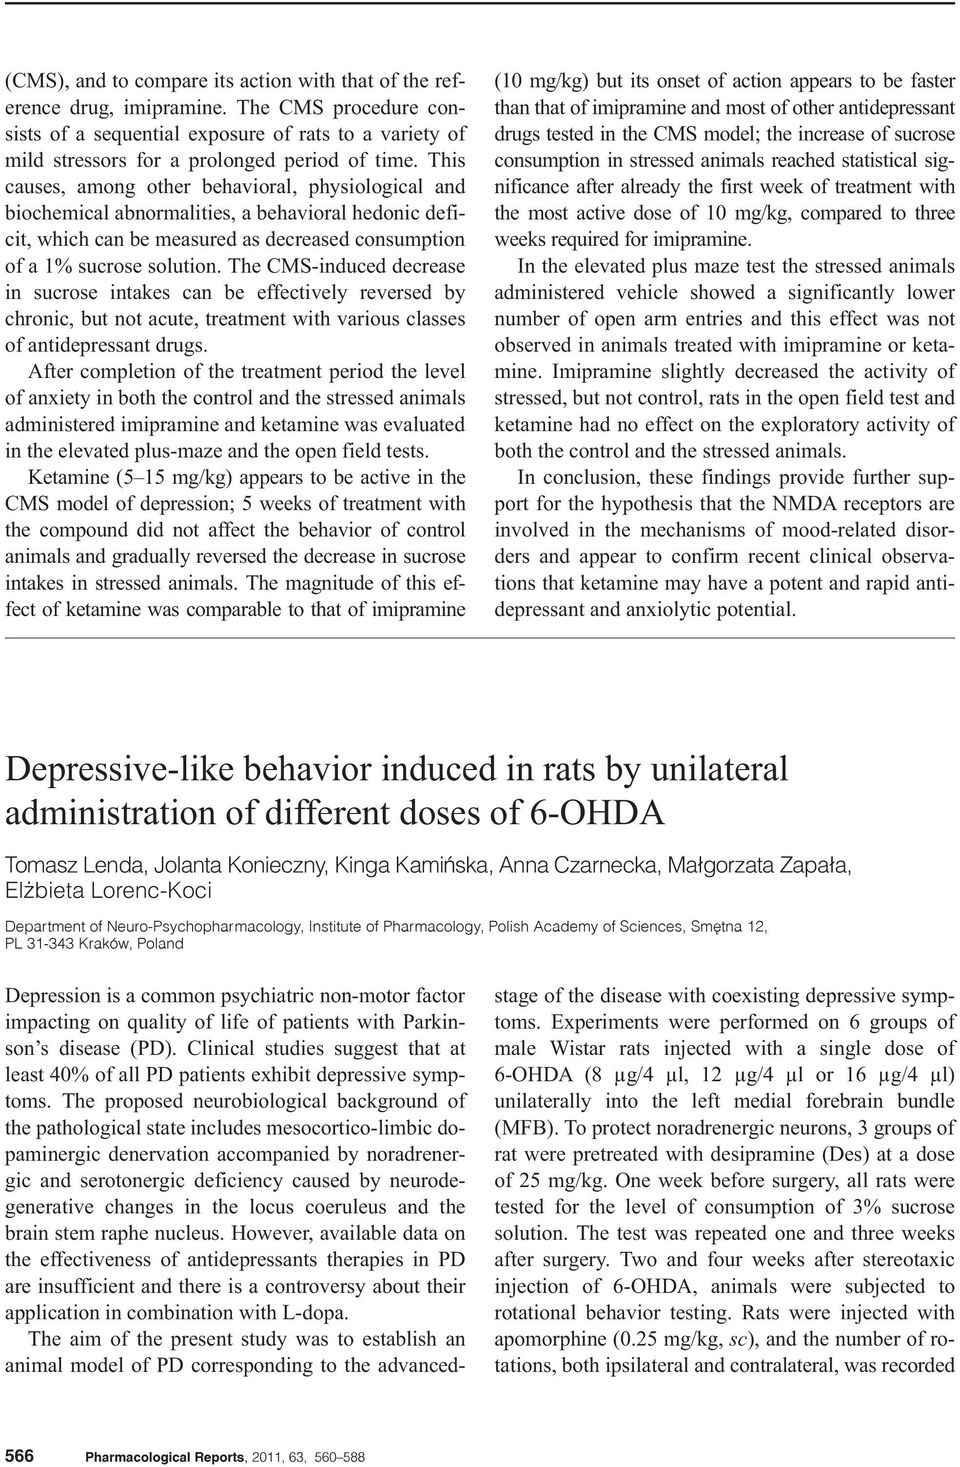 The CMS-induced decrease in sucrose intakes can be effectively reversed by chronic, but not acute, treatment with various classes of antidepressant drugs.